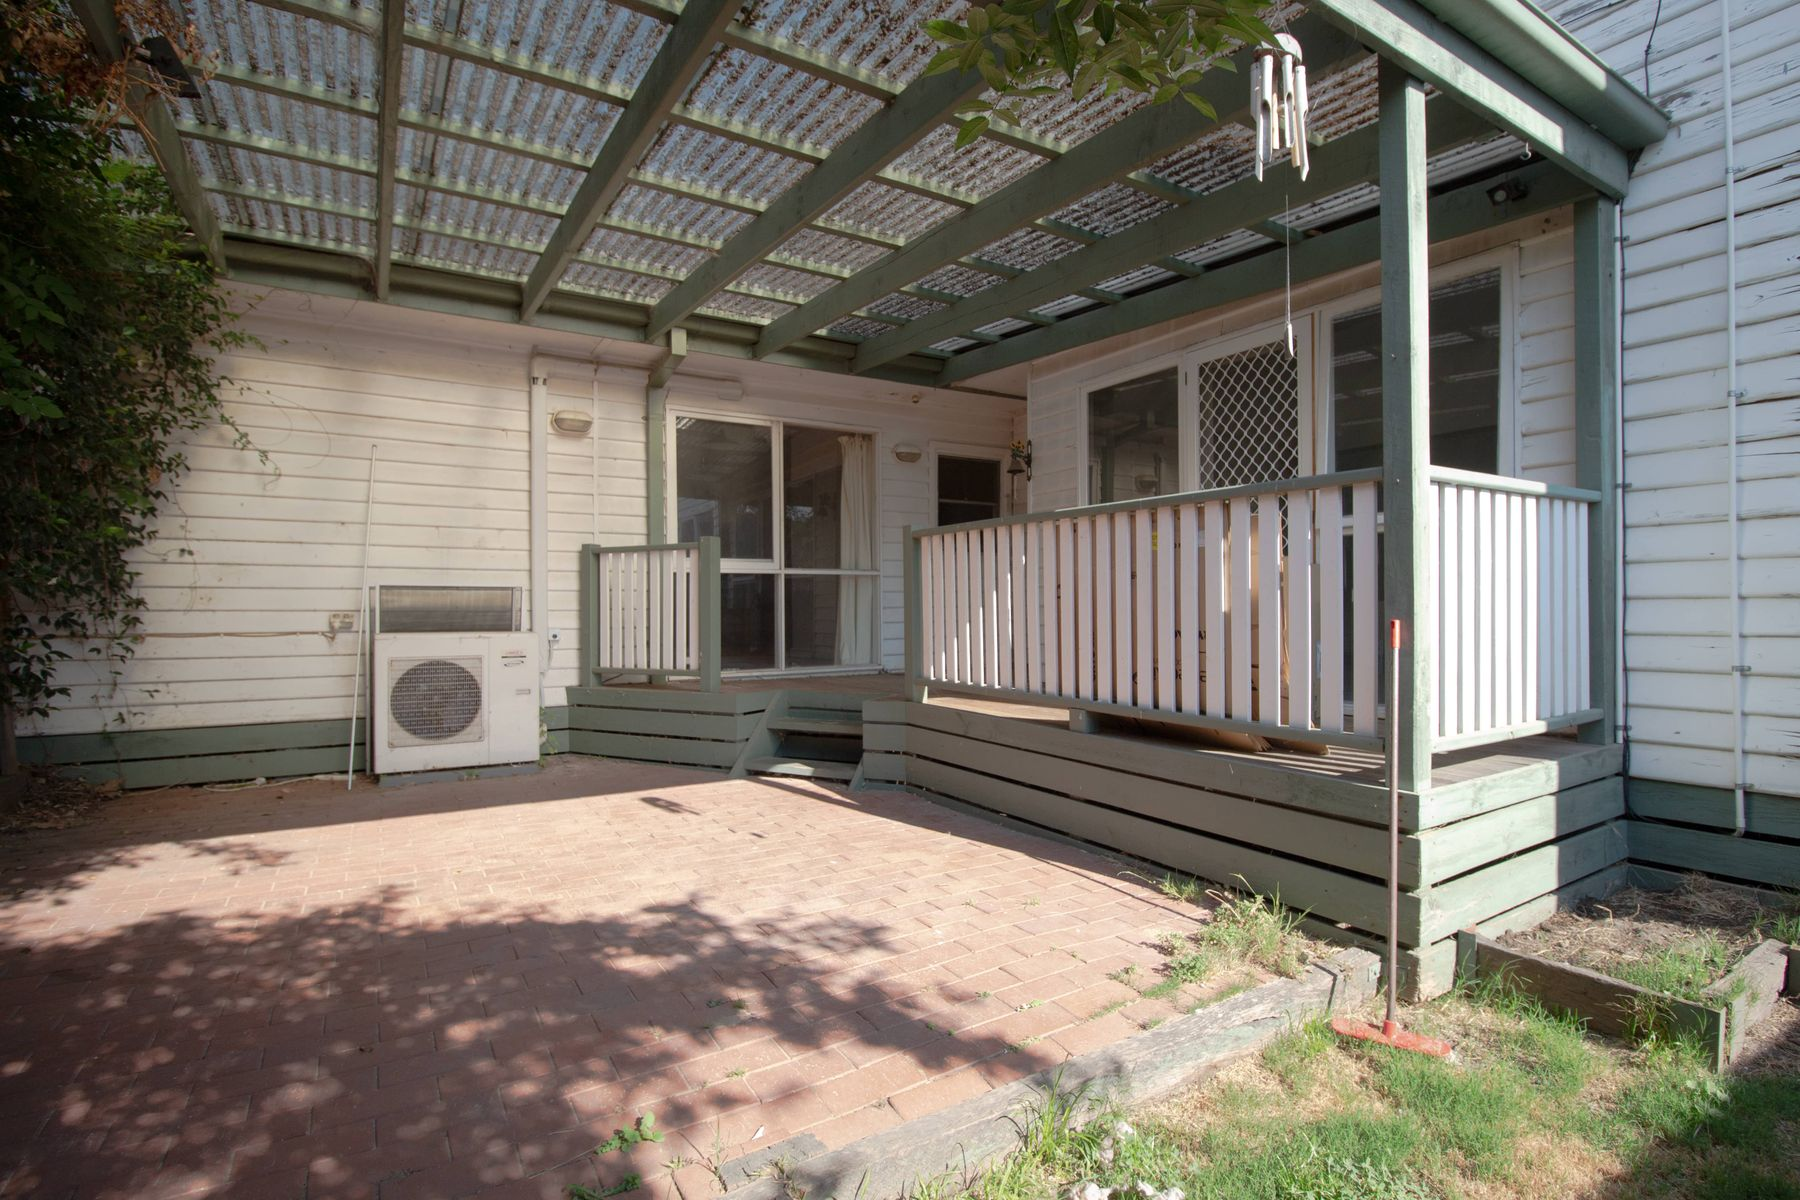 2A/11 Old Lilydale Road, Ringwood East, VIC 3135